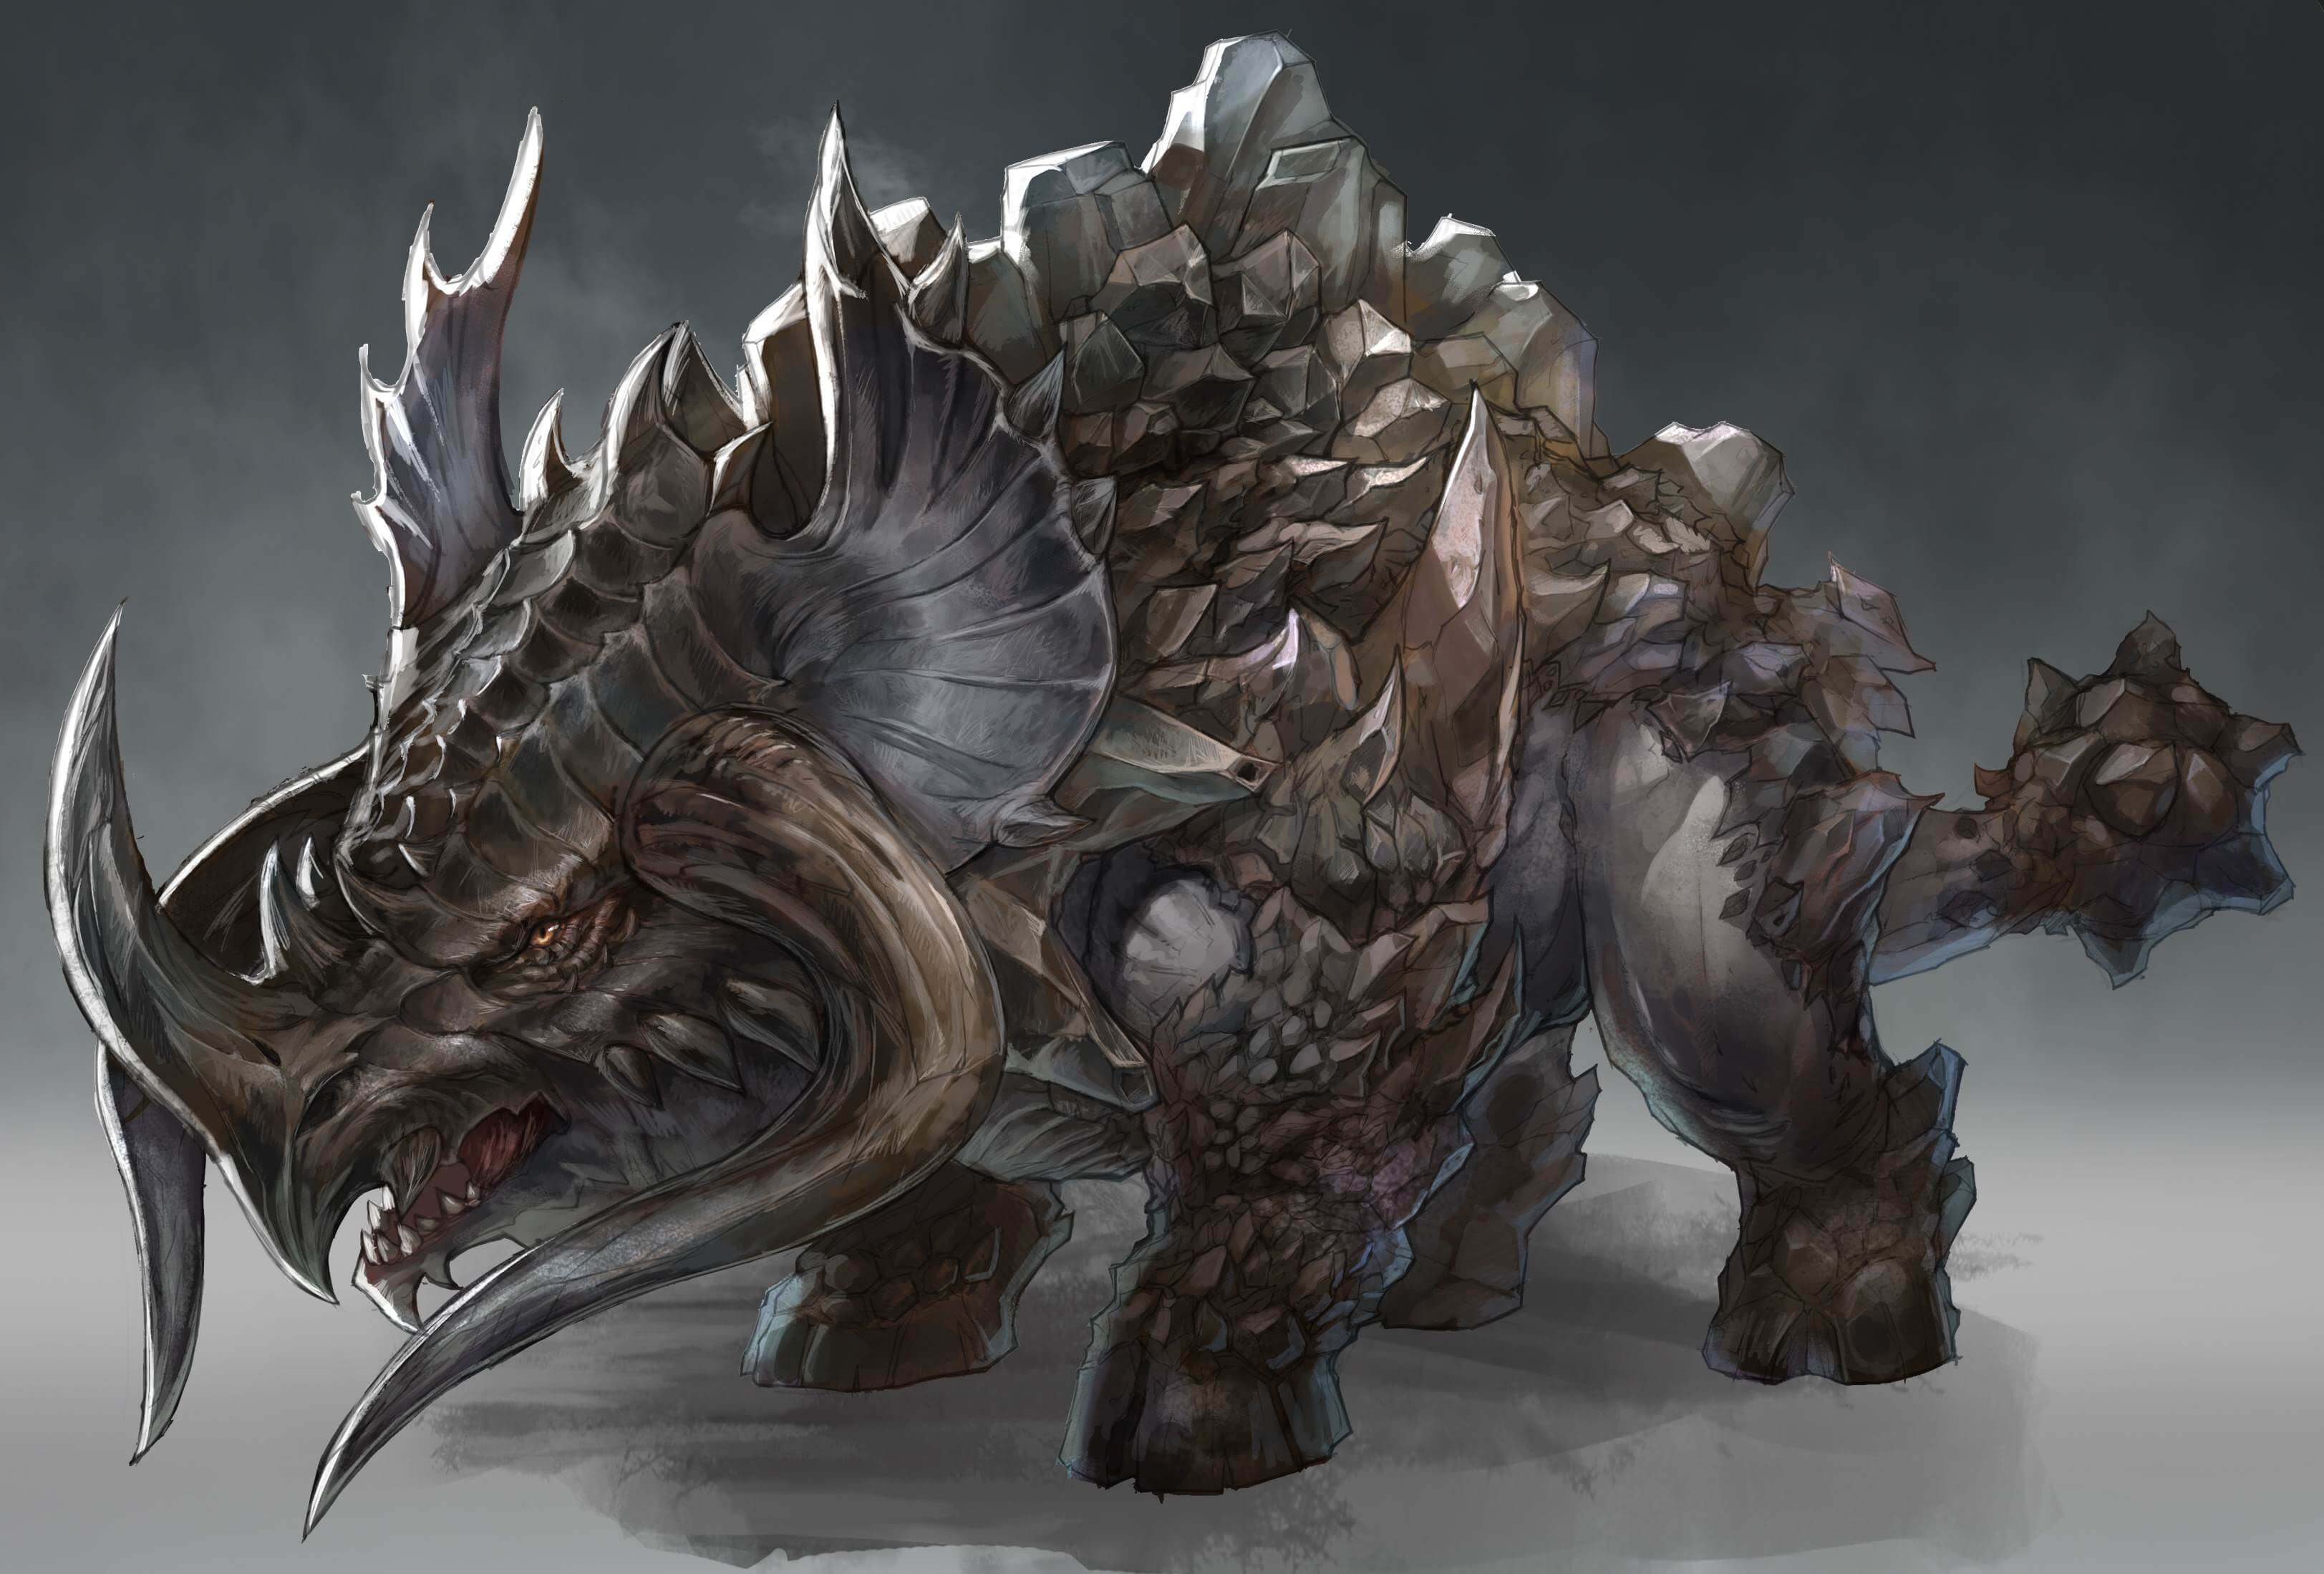 Ascent-Infinite-Realm-Concept-Art-Xumhorn-Dinosaur-like-Creature